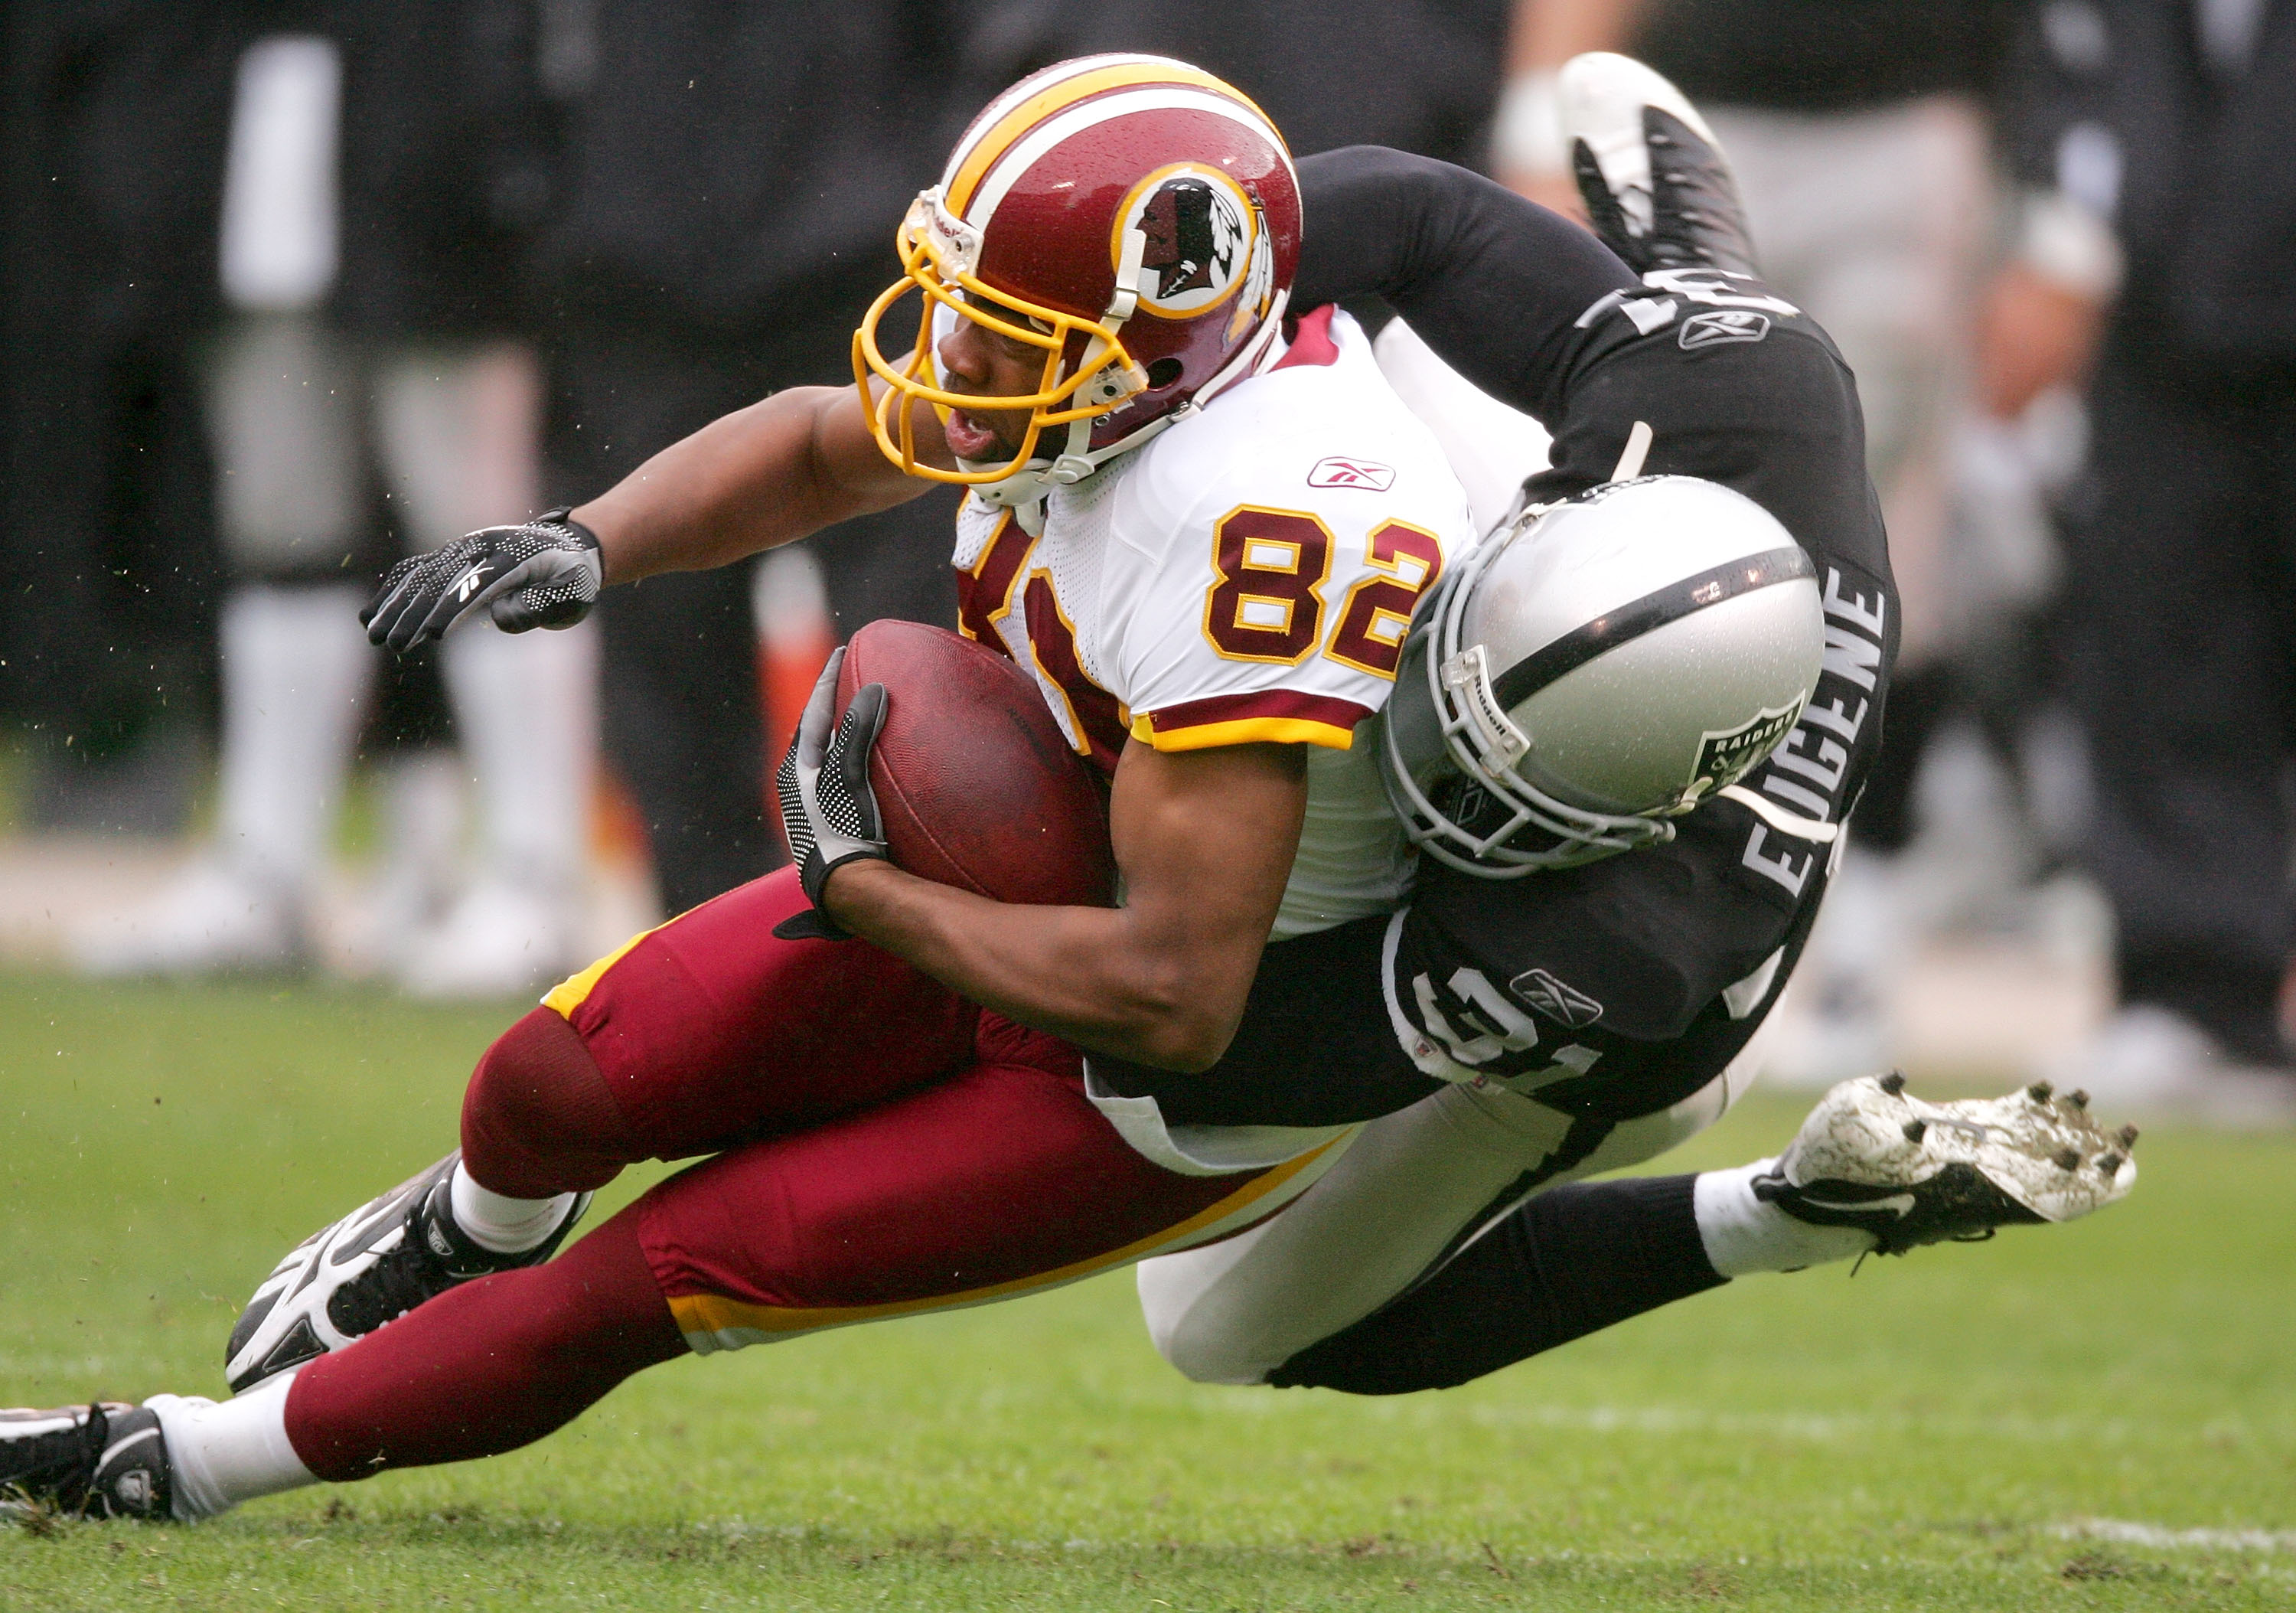 OAKLAND, CA - DECEMBER 13:  Antwaan Randle El #82 of the Washington Redskins is tackled by Hiram Eugene #31 of the Oakland Raiders at Oakland-Alameda County Coliseum on December 13, 2009 in Oakland, California.  (Photo by Ezra Shaw/Getty Images)